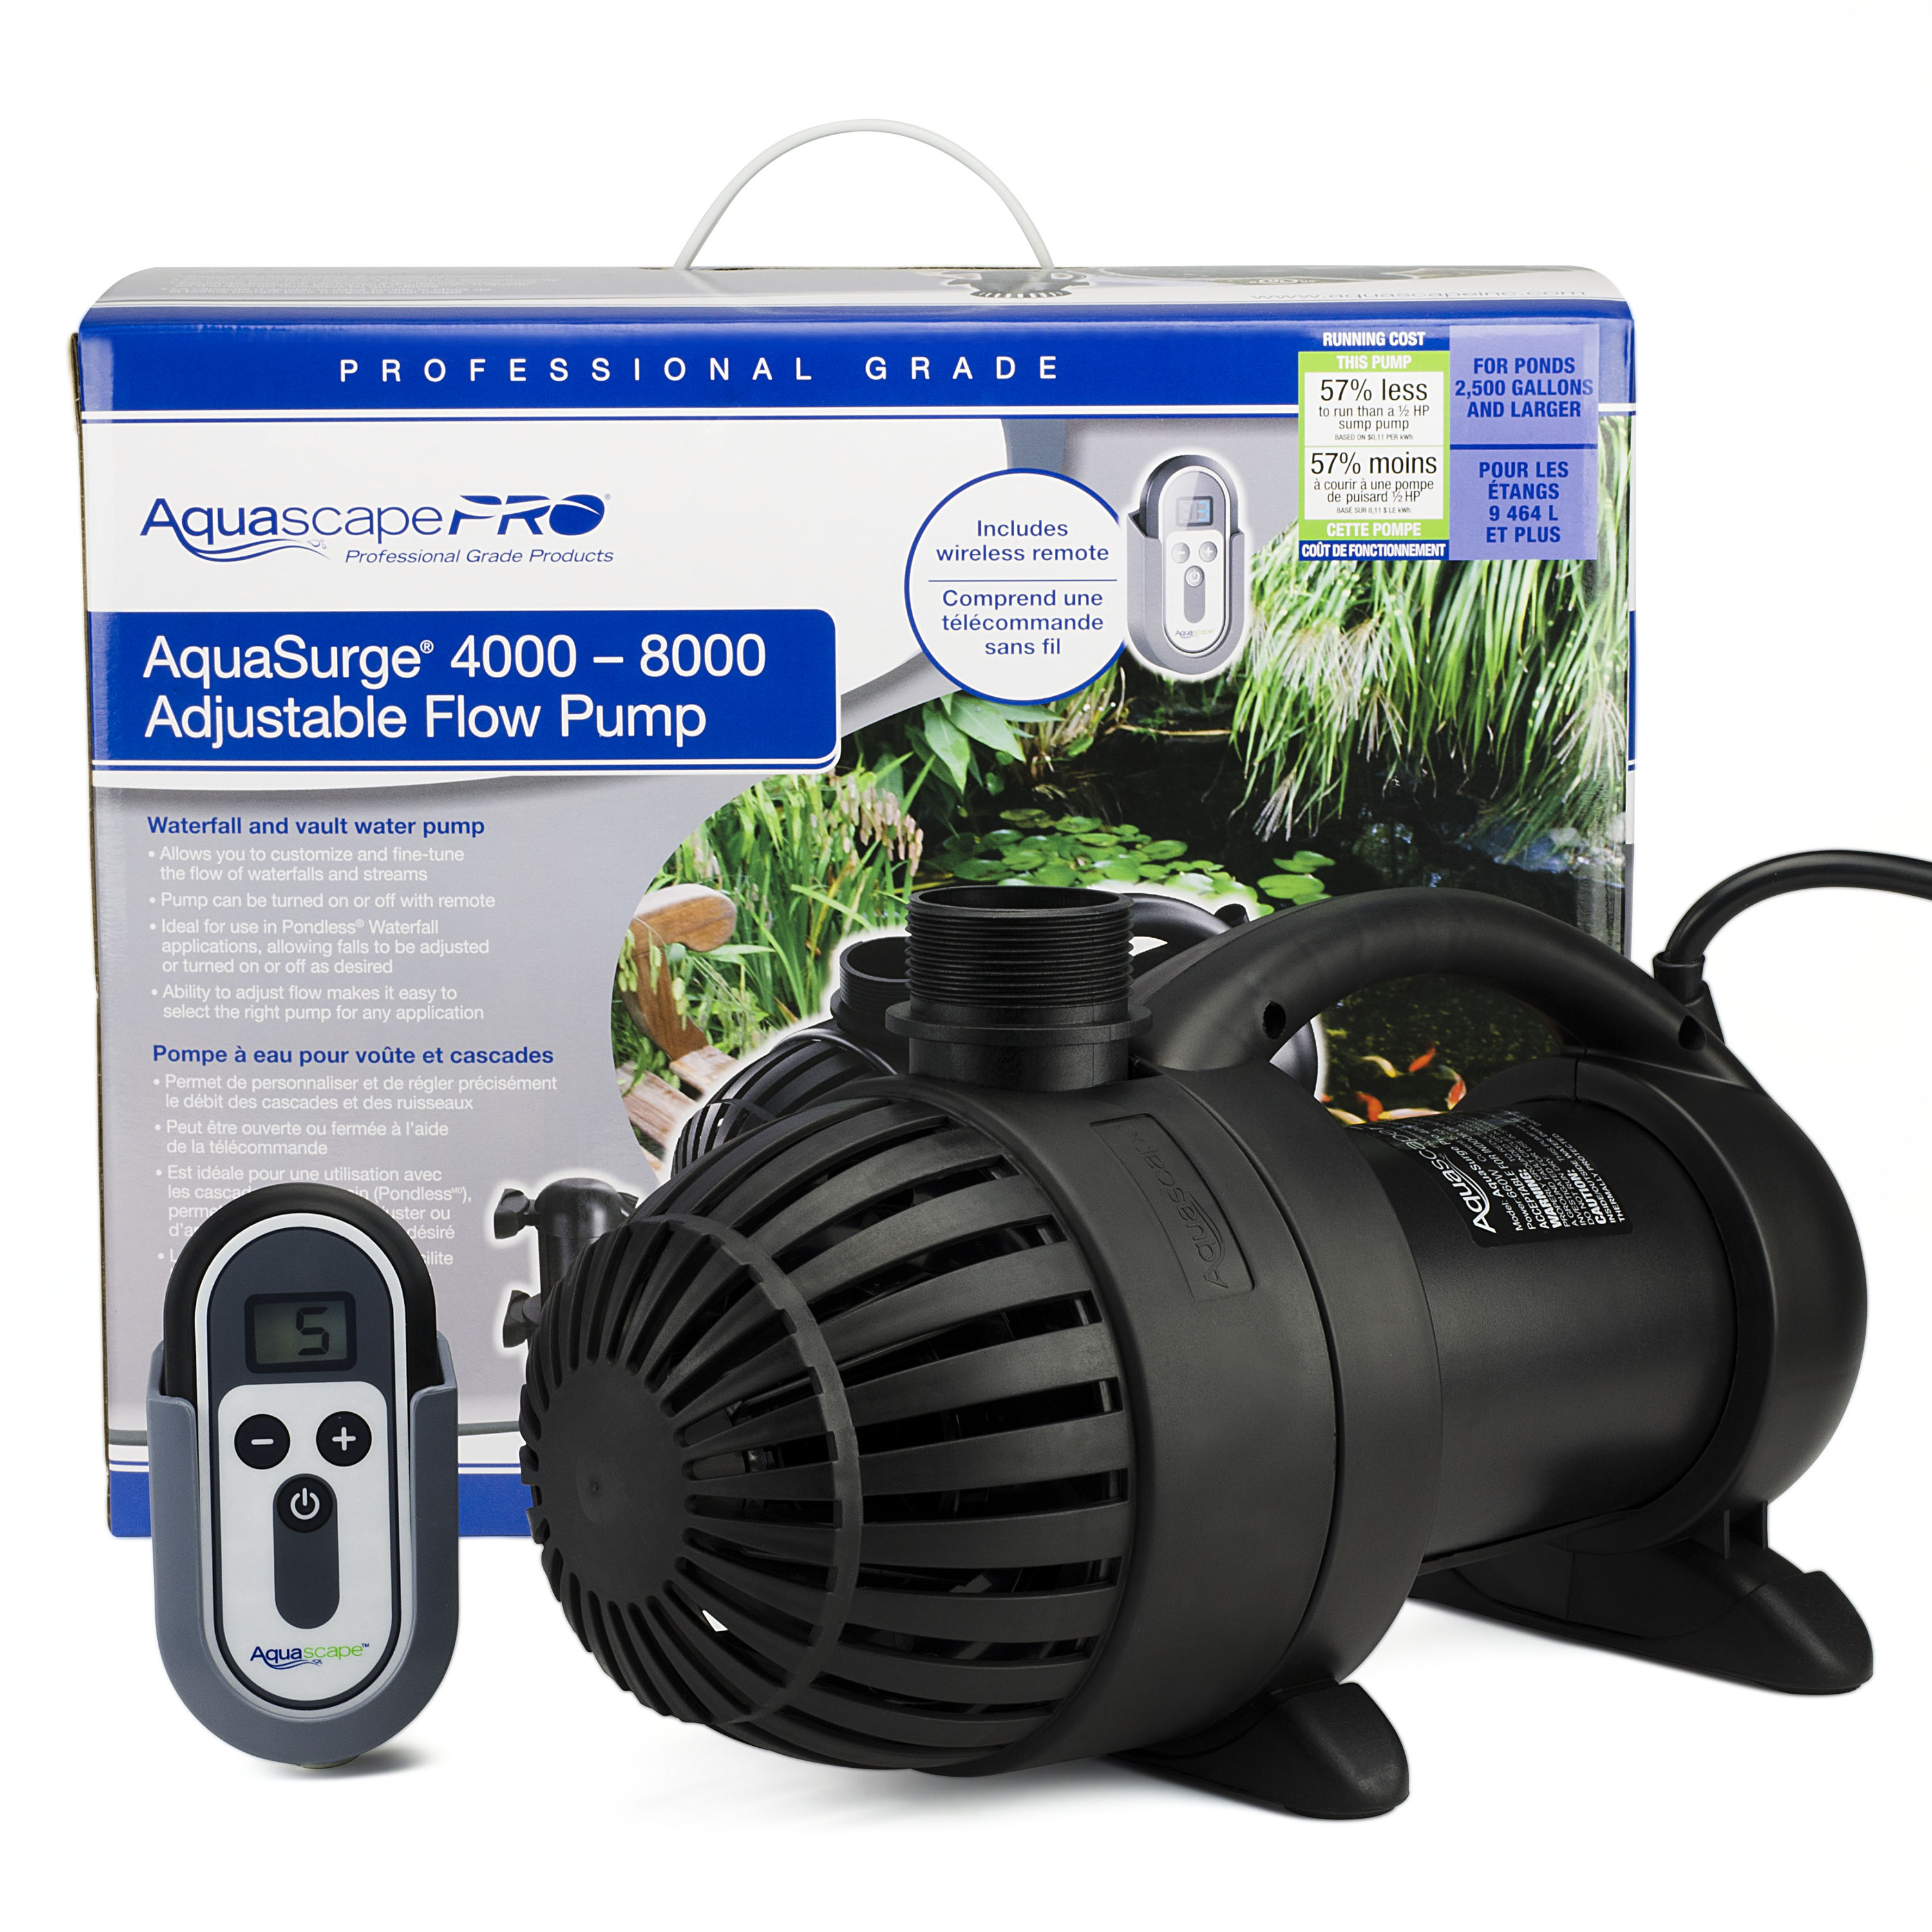 AquaSurge 4000-8000 Adjustable Flow Pond Pump